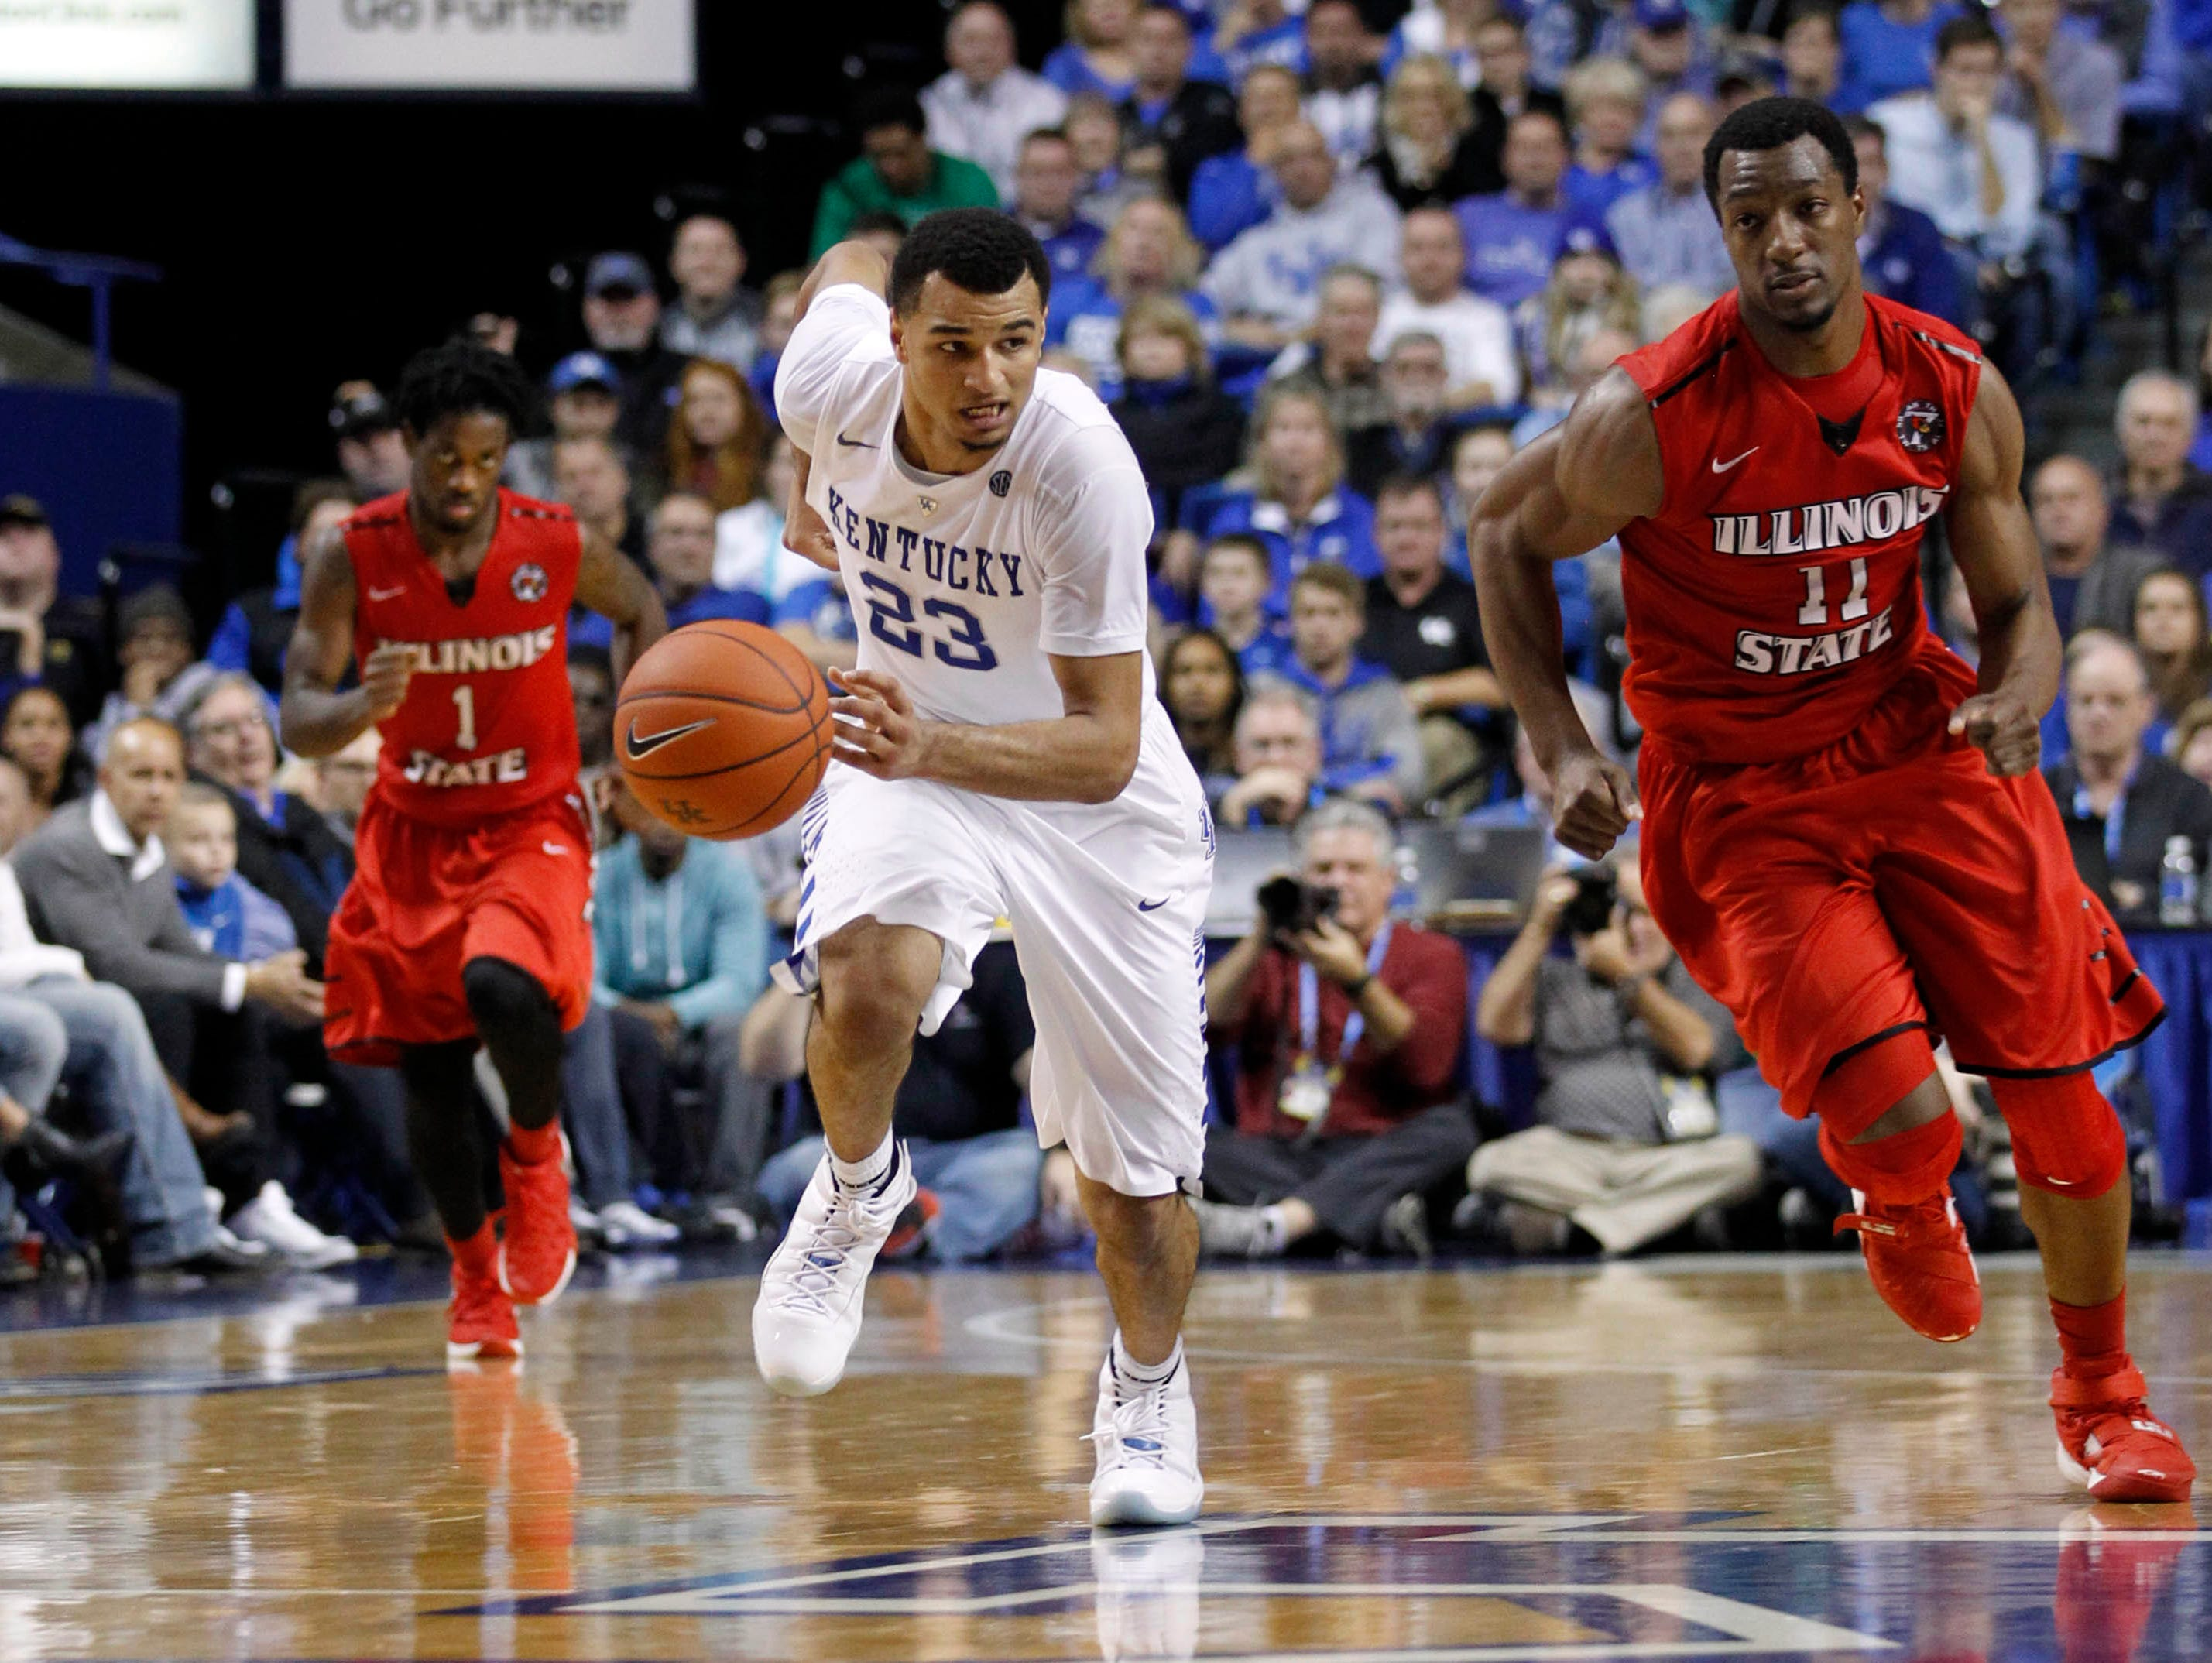 Nov 30, 2015; Lexington, KY, USA; Kentucky Wildcats guard Jamal Murray (23) dribbles the ball against Illinois State Redbirds forward MiKyle McIntosh (11) in the second half at Rupp Arena. Mandatory Credit: Mark Zerof-USA TODAY Sports